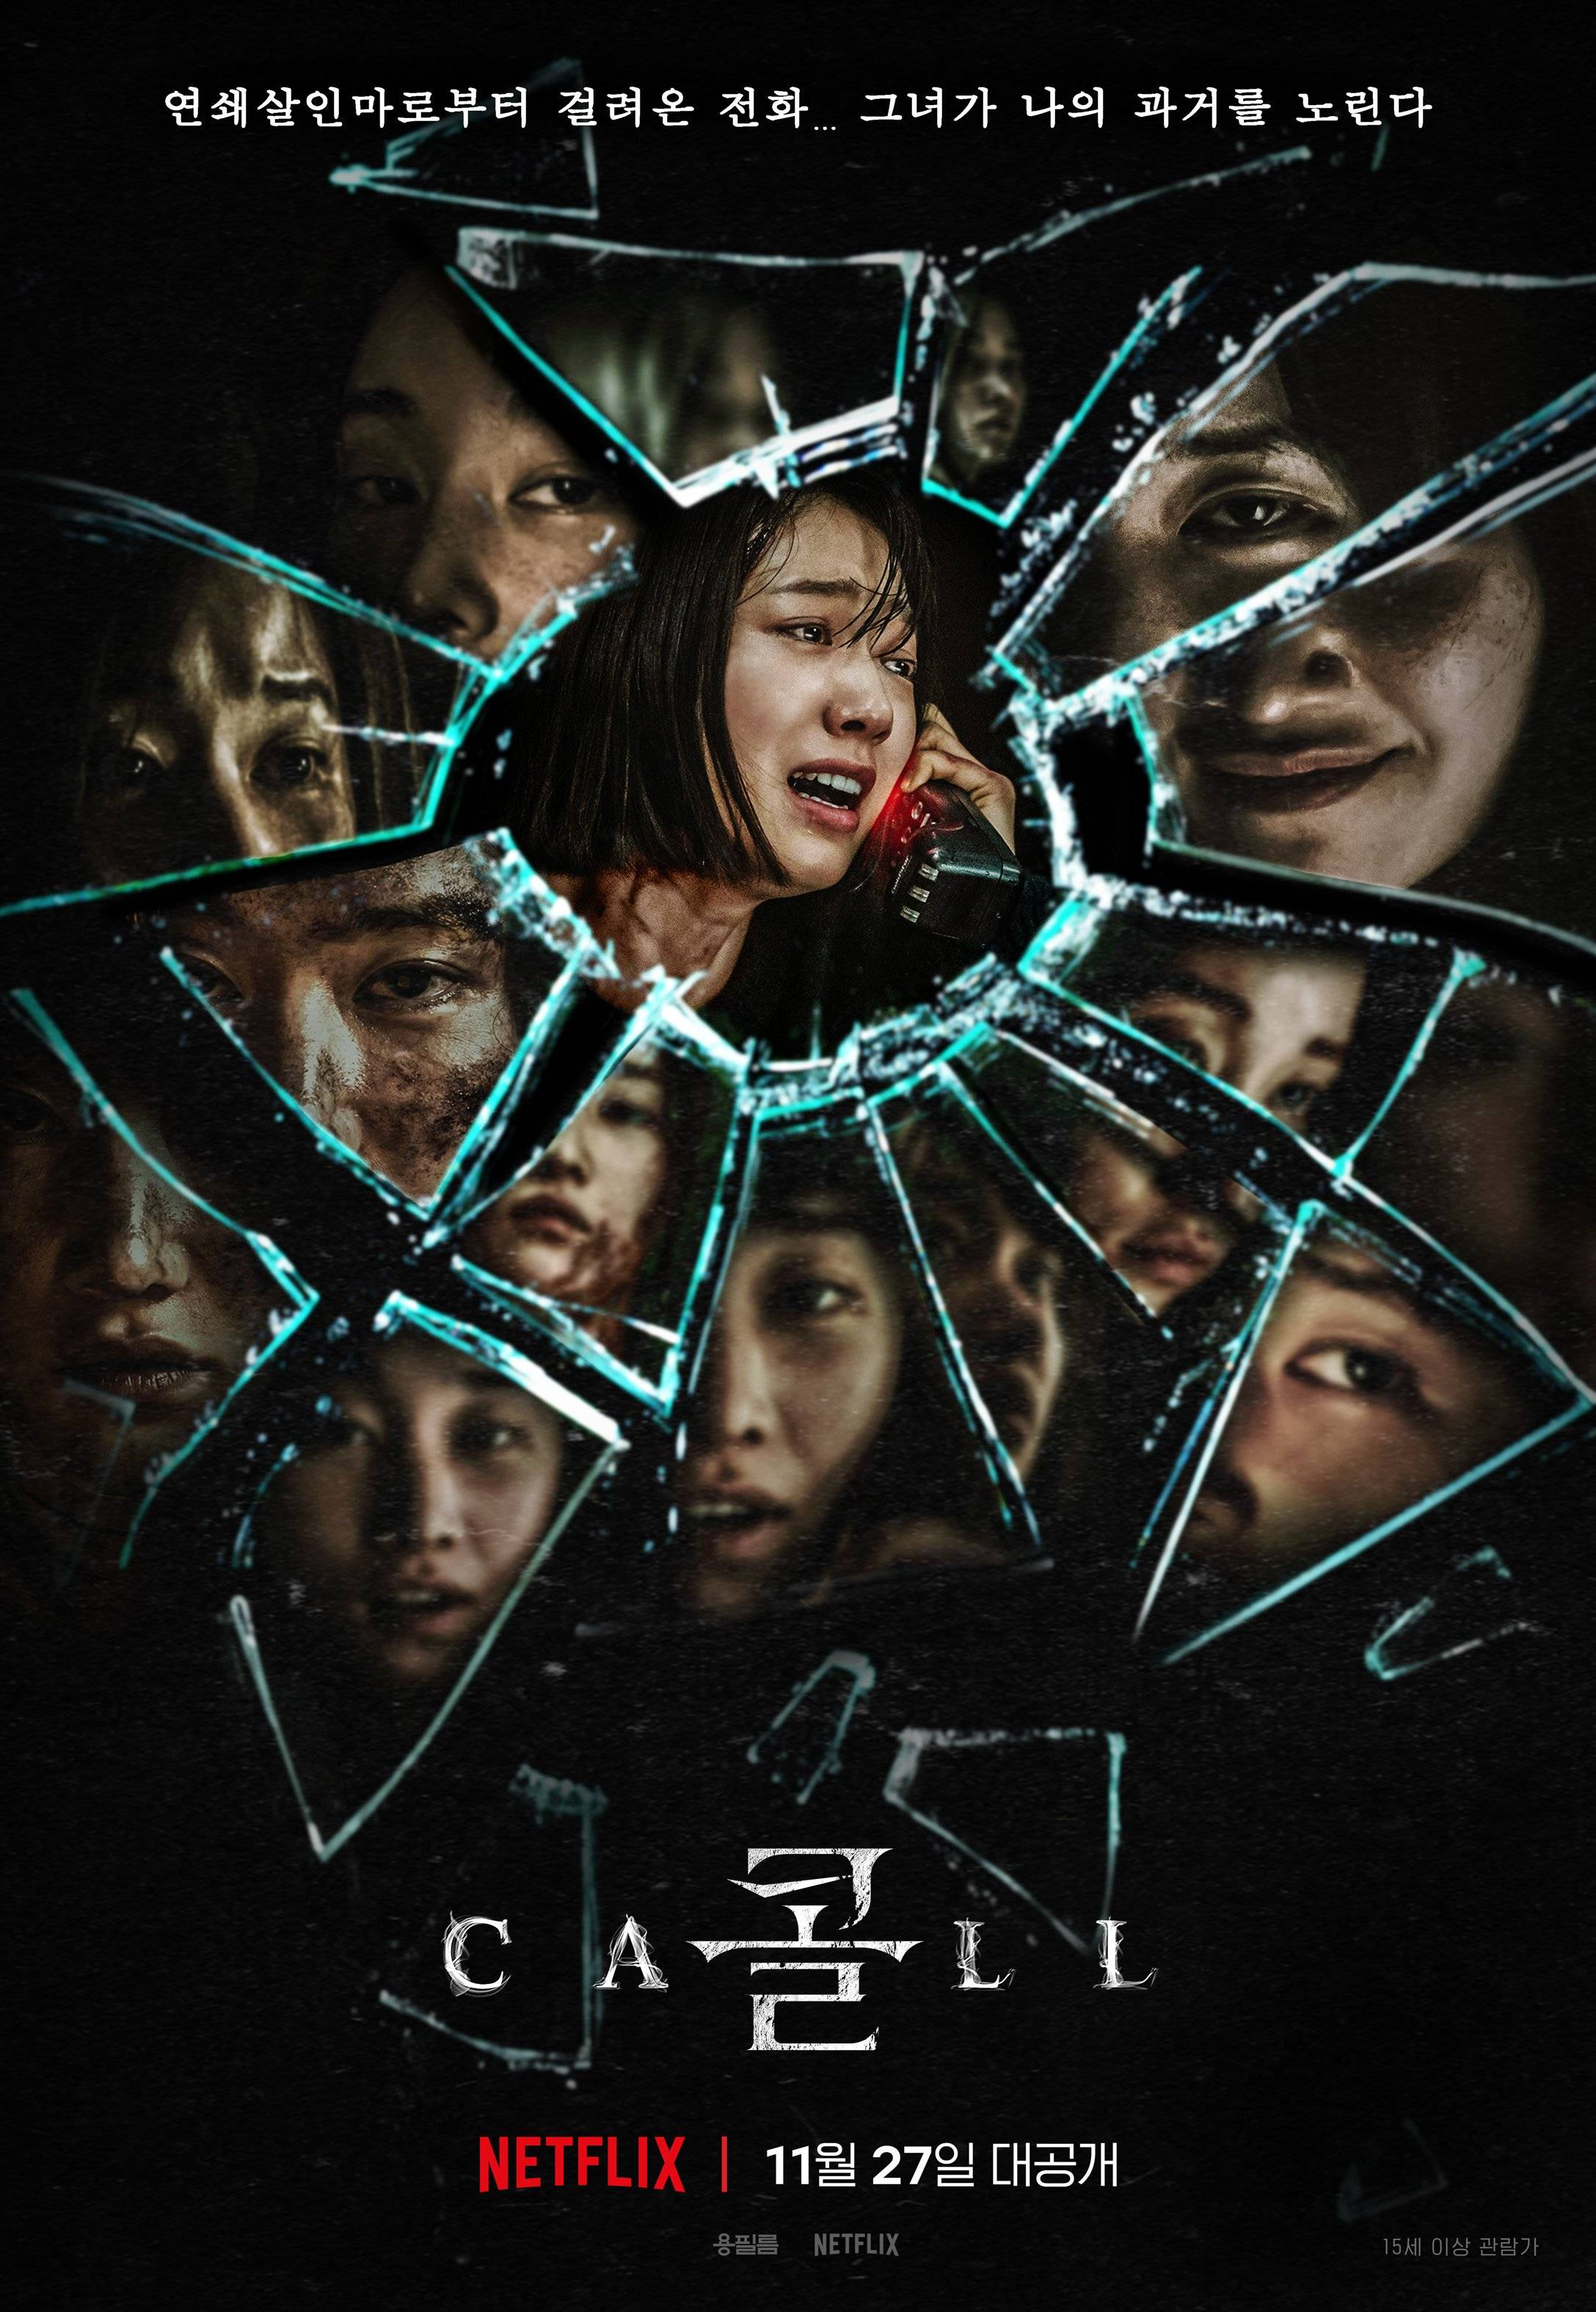 Photo] New Poster Added for the Upcoming Korean Movie 'The Call' @ HanCinema